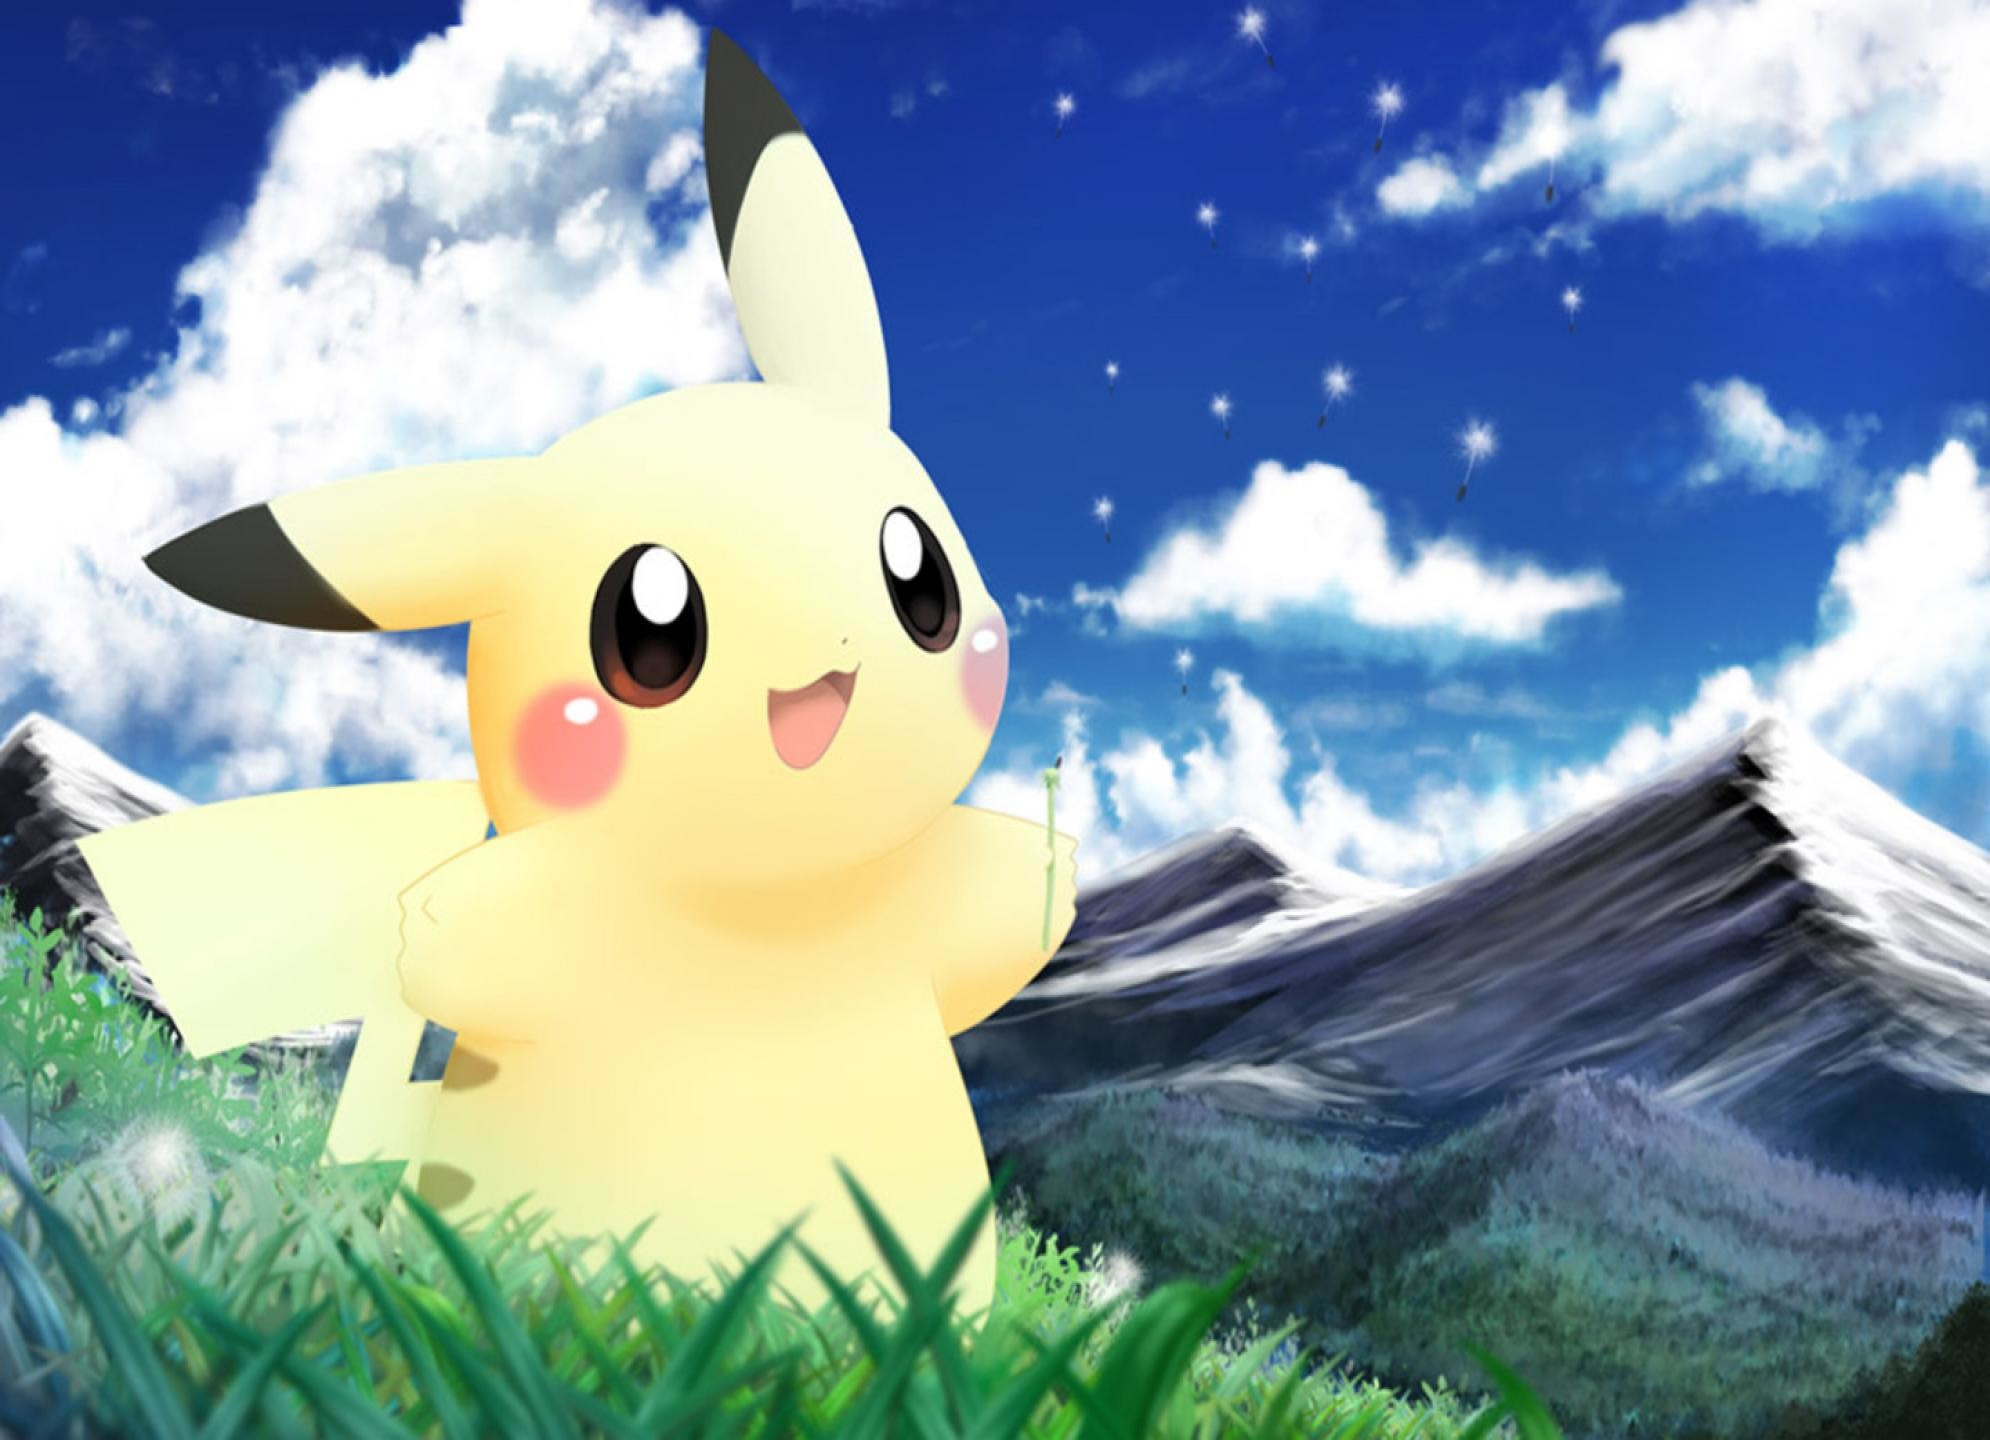 1990x1440 Cute Pikachu Wallpaper 5119 Hd Wallpapers in Games Imagescicom